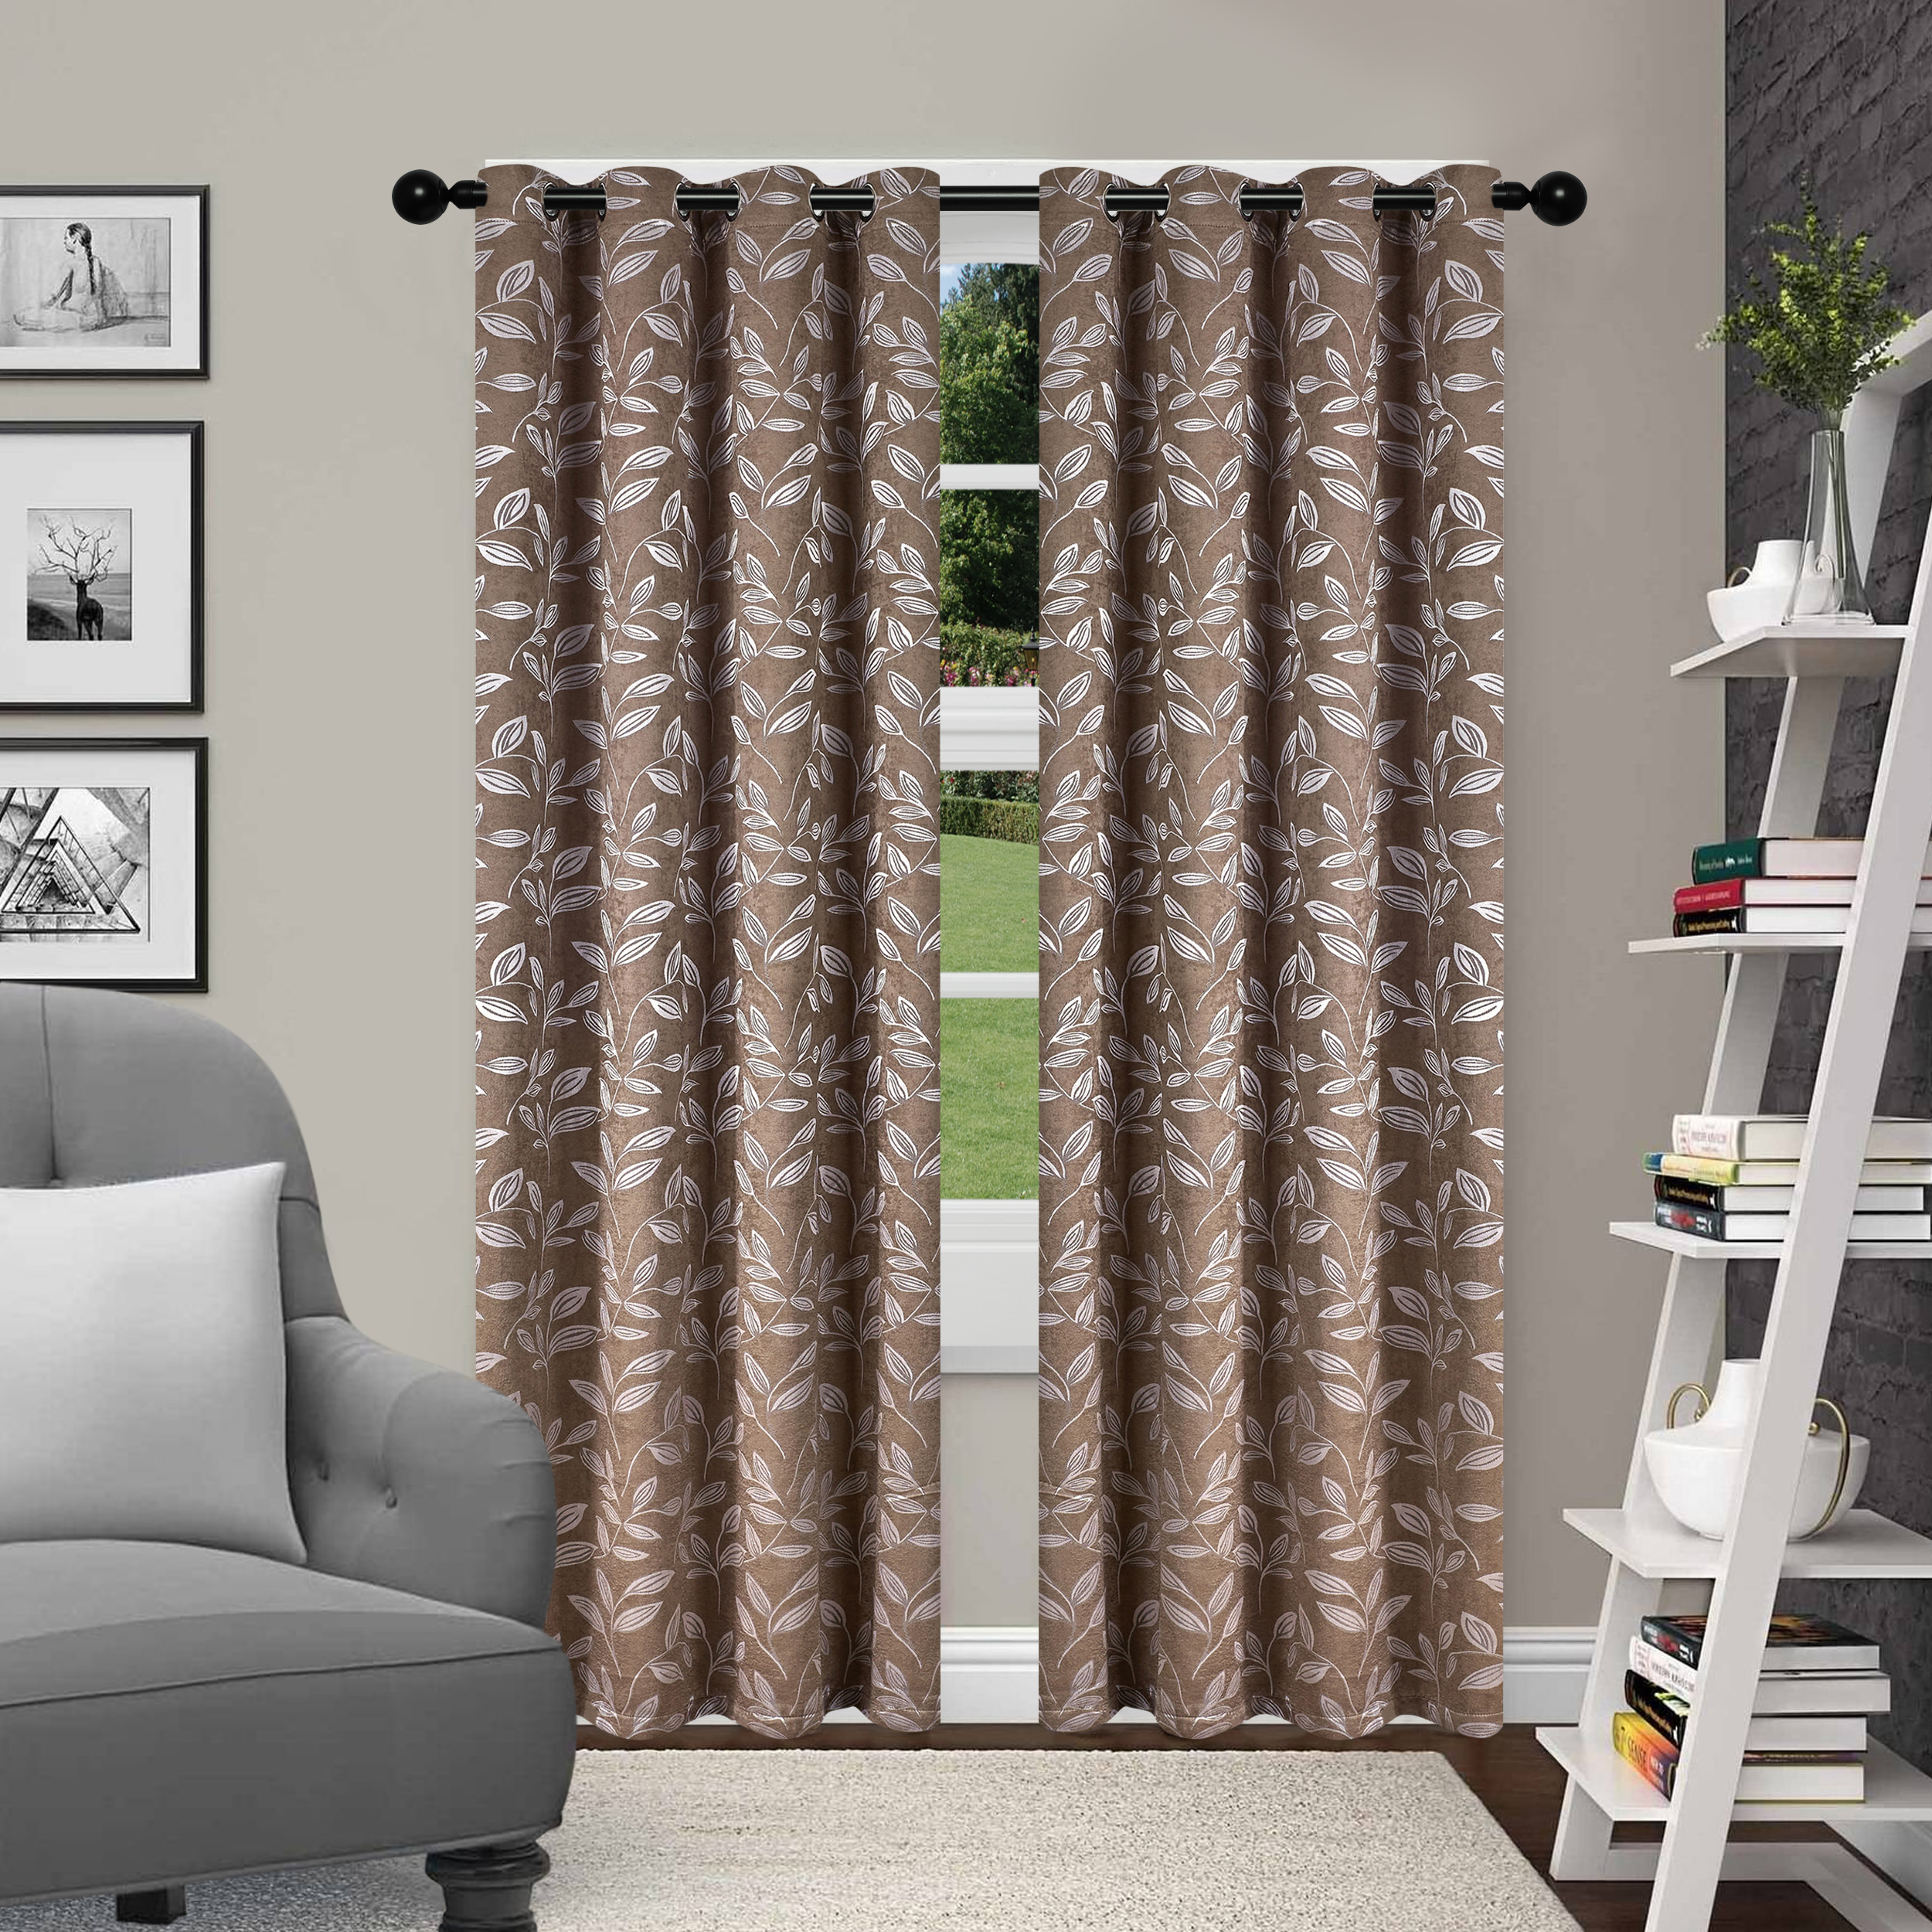 Superior Leaves Textured Blackout Curtain Set Of 2 With Within Superior Leaves Insulated Thermal Blackout Grommet Curtain Panel Pairs (View 5 of 30)